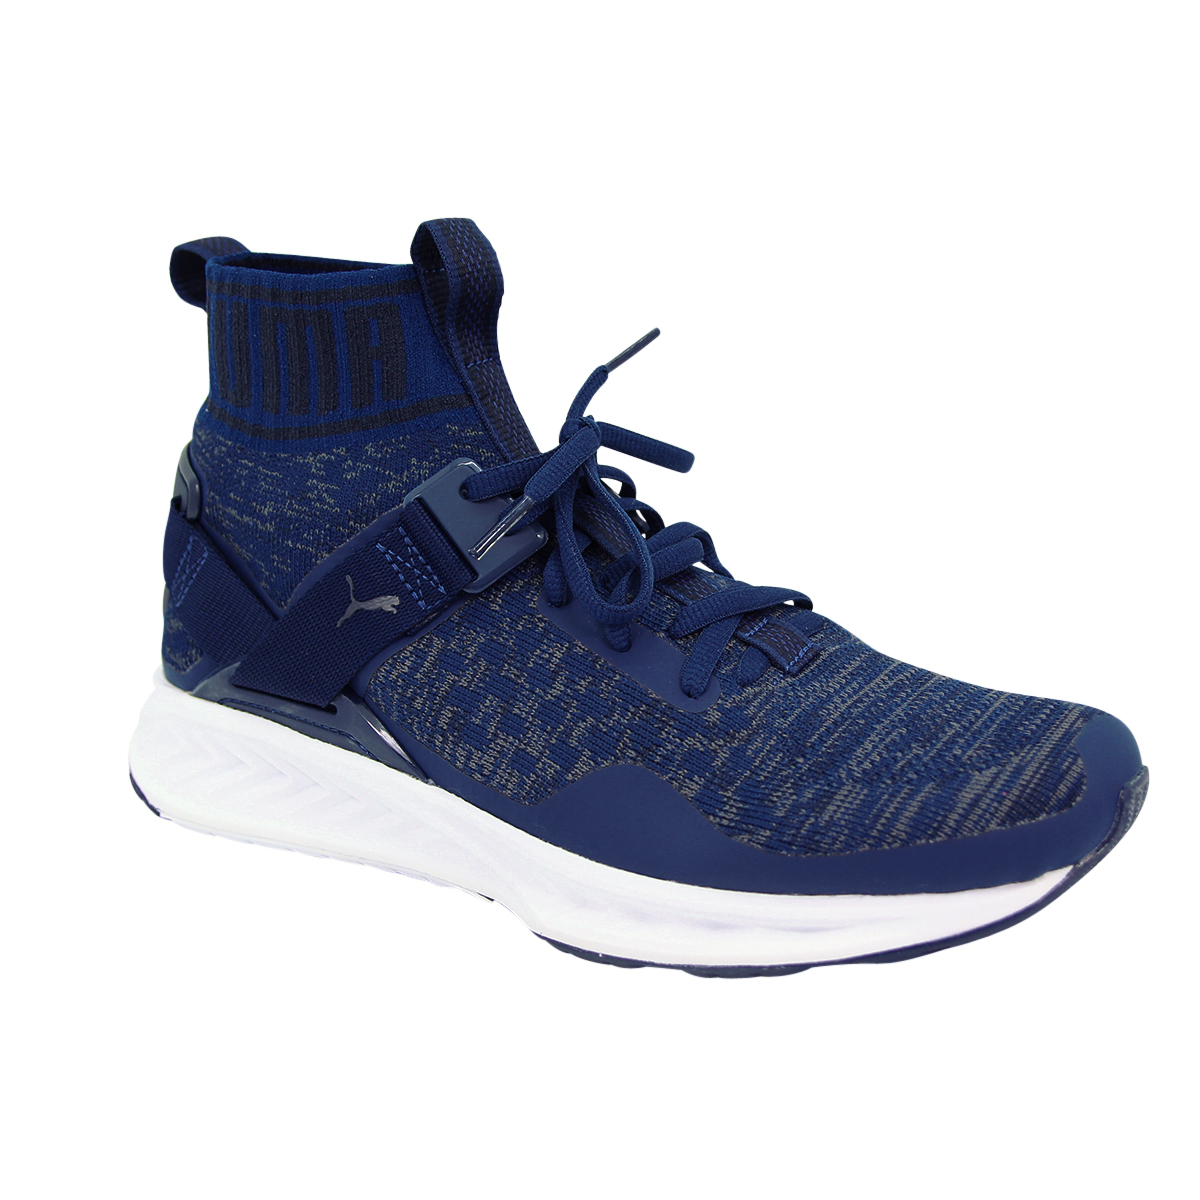 e4e6470fb10 PUMA Ignite Evoknit Men s Shoes High Top Trainers Blue Depths Drift 189697- 11 UK 11. About this product. Picture 1 of 12  Picture 2 of 12 ...